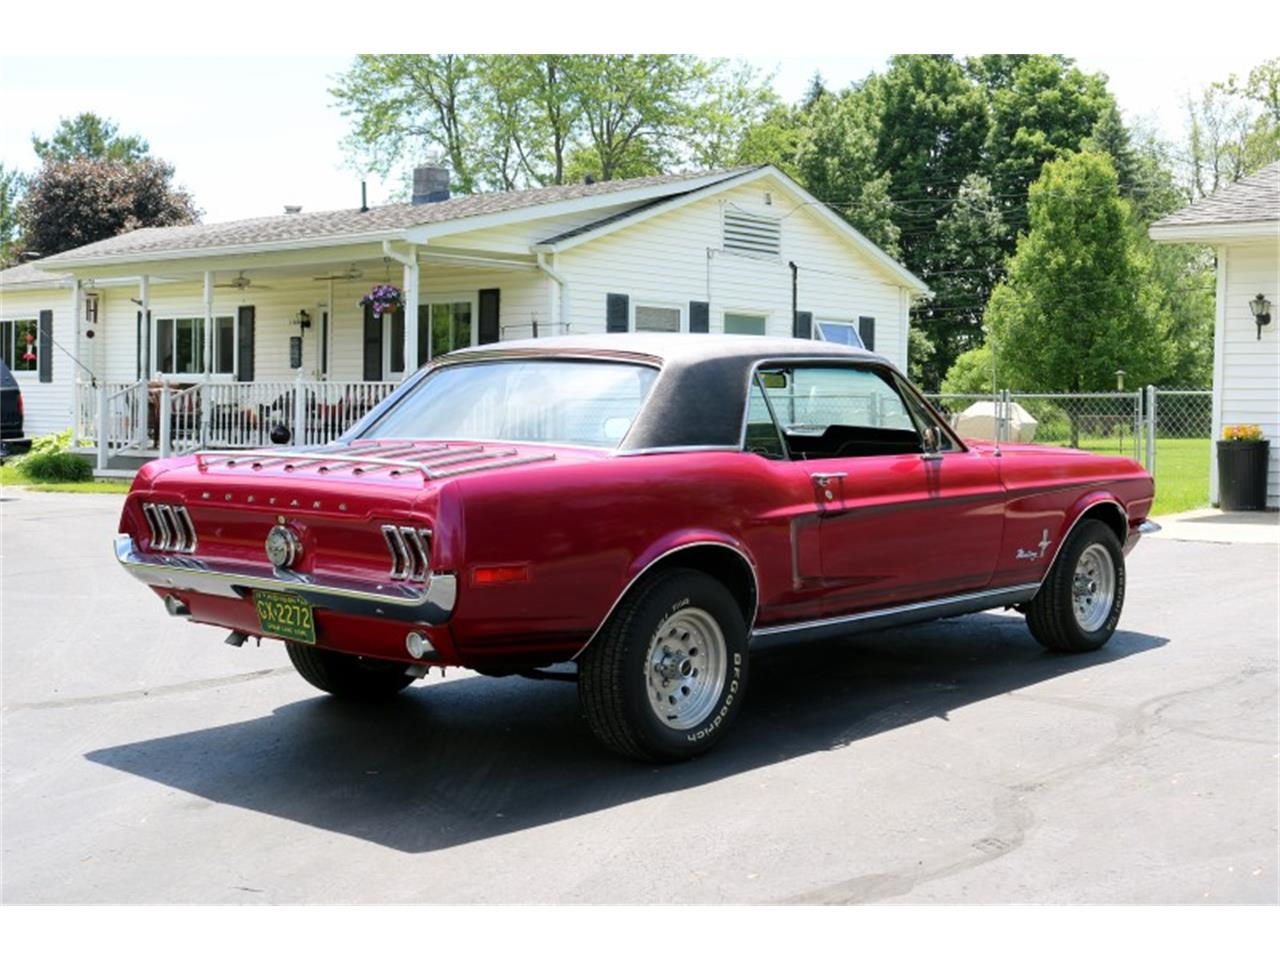 Large Picture of Classic '68 Ford Mustang - $11,900.00 - QB37